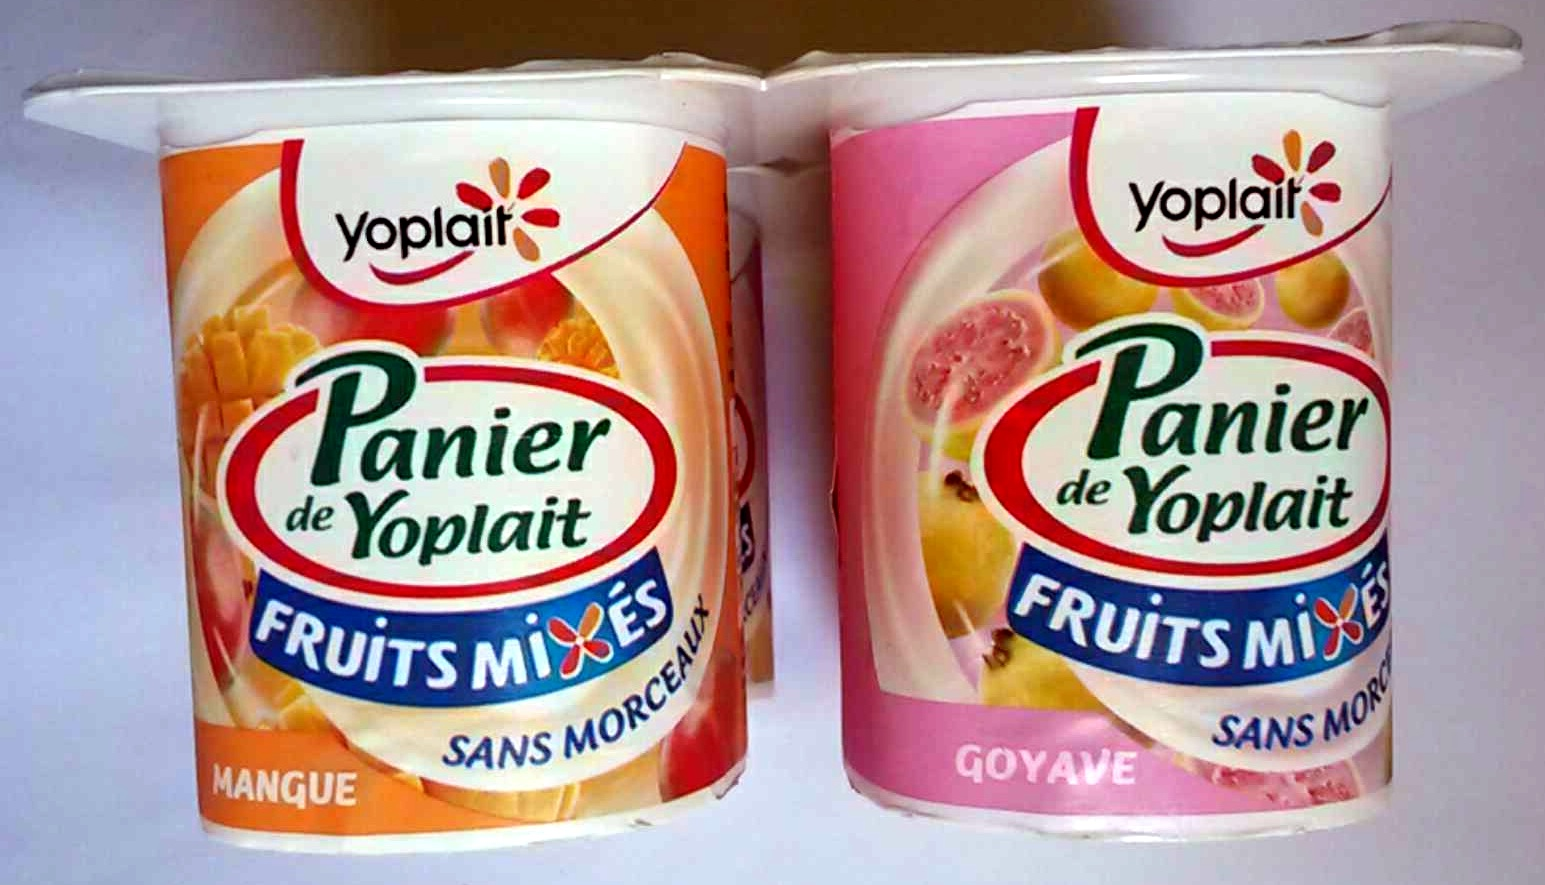 Recette De Yaourt Glace moreover School Lunches Your Thoughts further Say Oui To All New French Style Yogurt furthermore Traditional Vs Greek Style Yogurt as well Yoplait Unveils Yogurt And Juice Drink Range. on yoplait ingredients